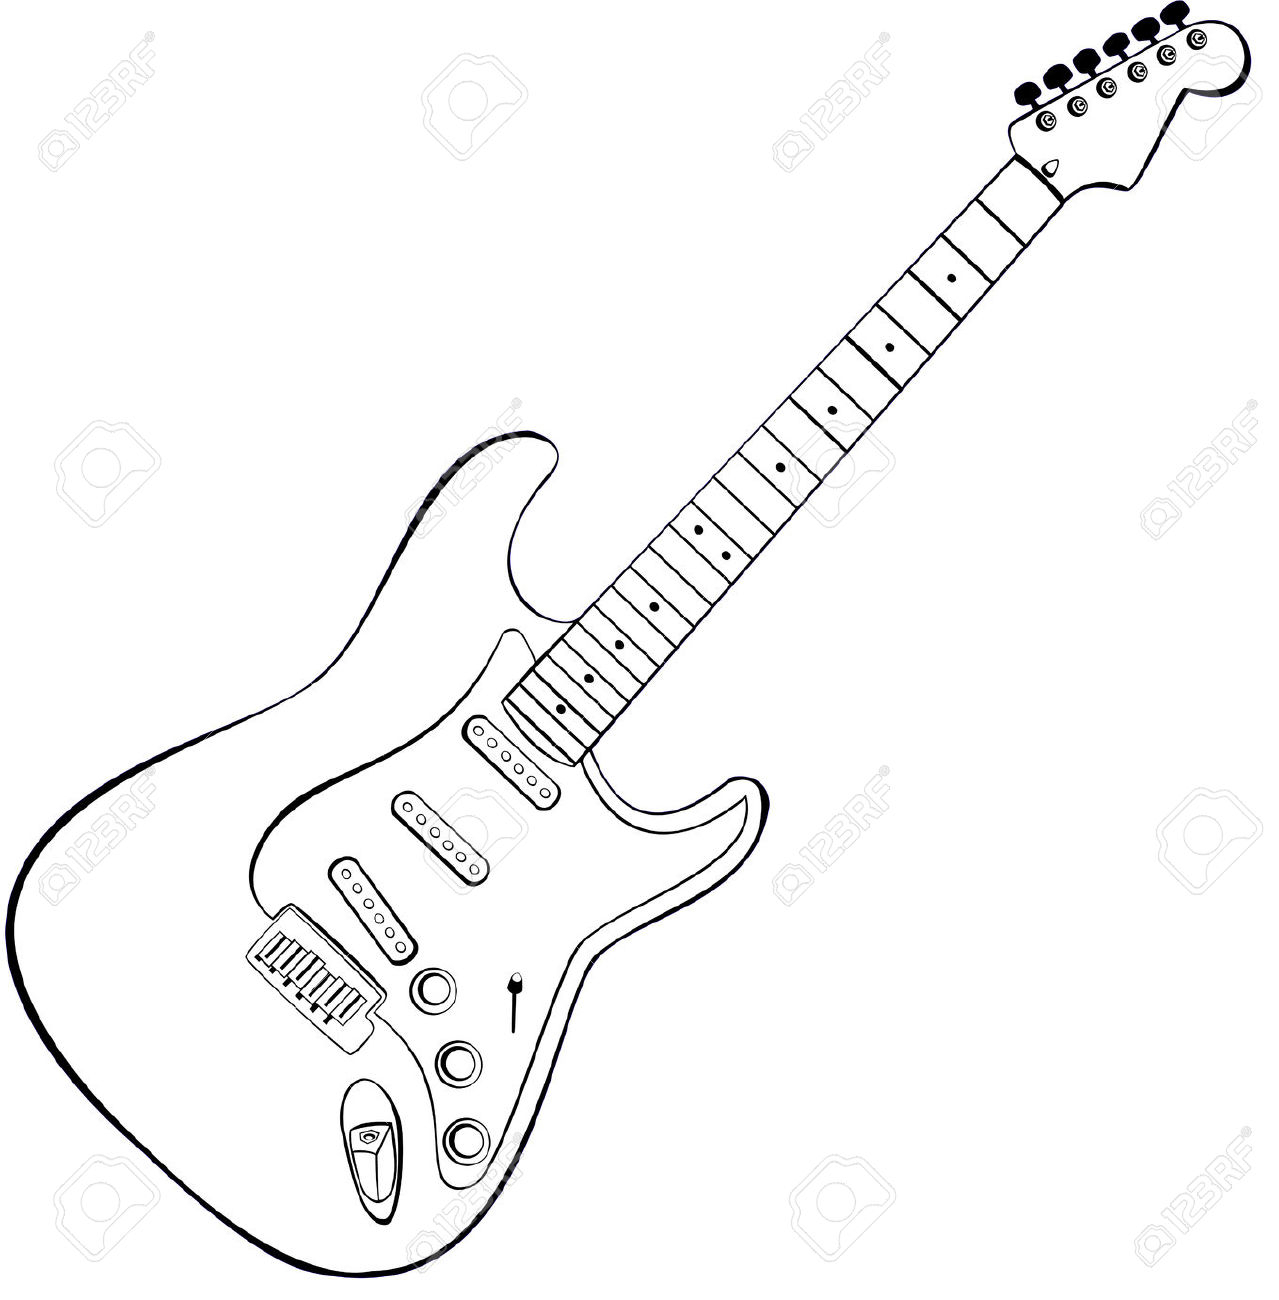 1279x1300 Simple Drawing Of A Guitar Guitar Sketches Drawing